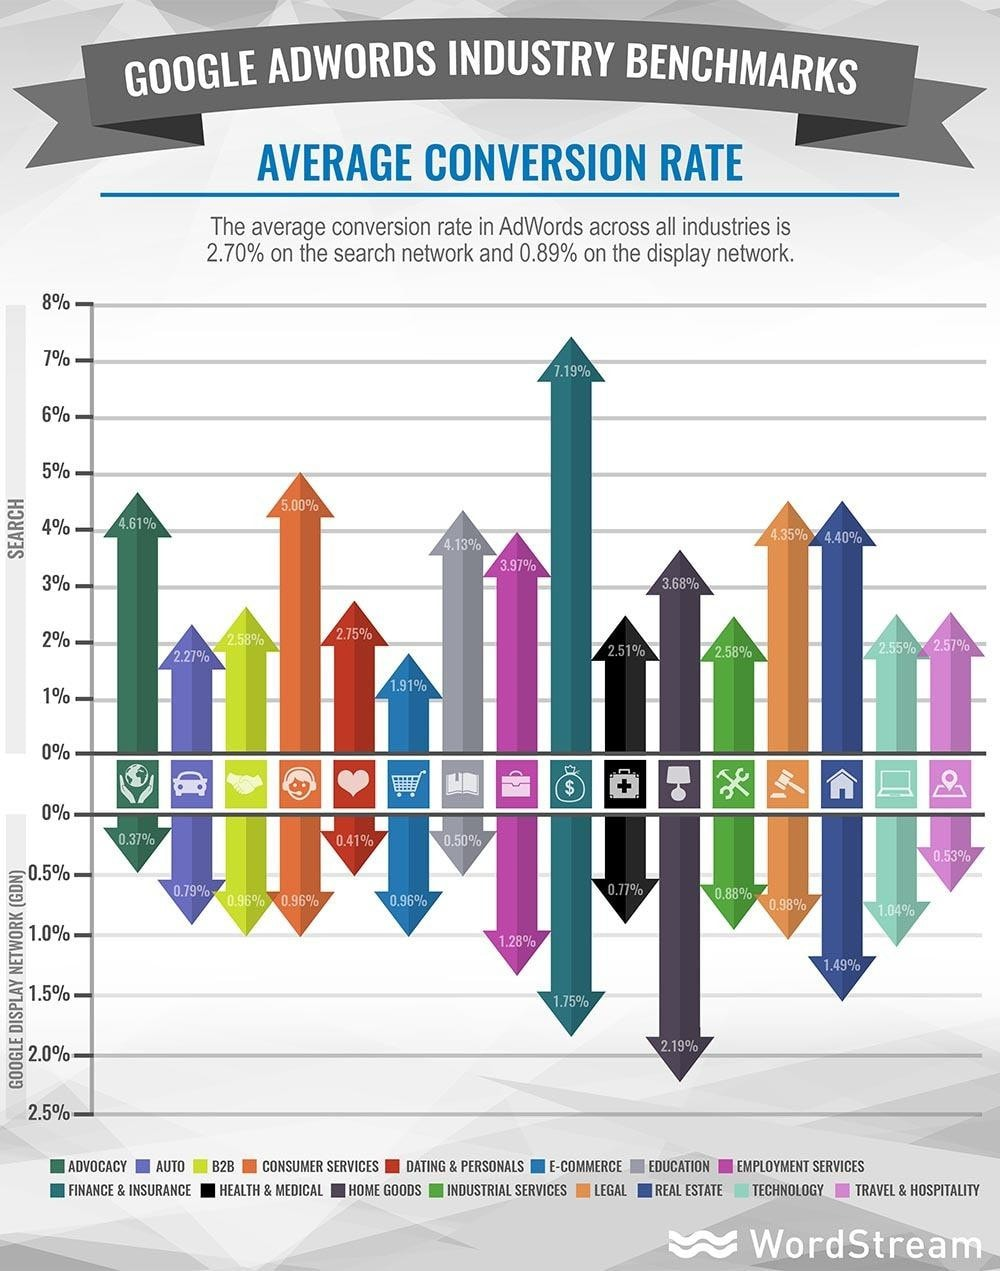 A graph showing average conversion rates by industry.